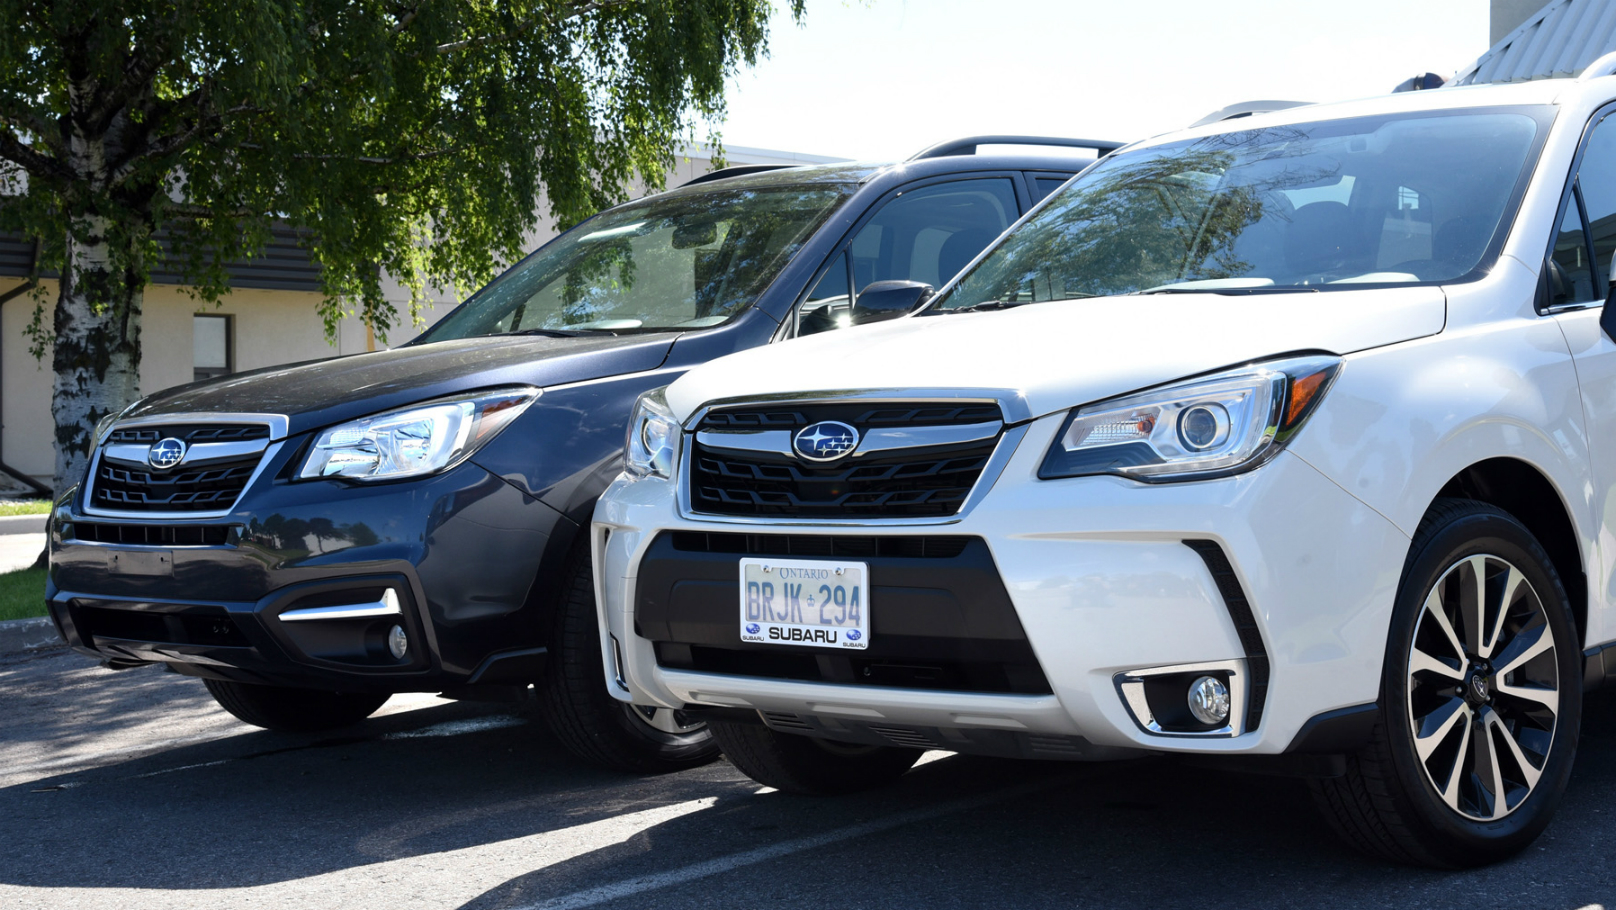 Subaru-Forester-2.5i-and-XT-2017-duo1